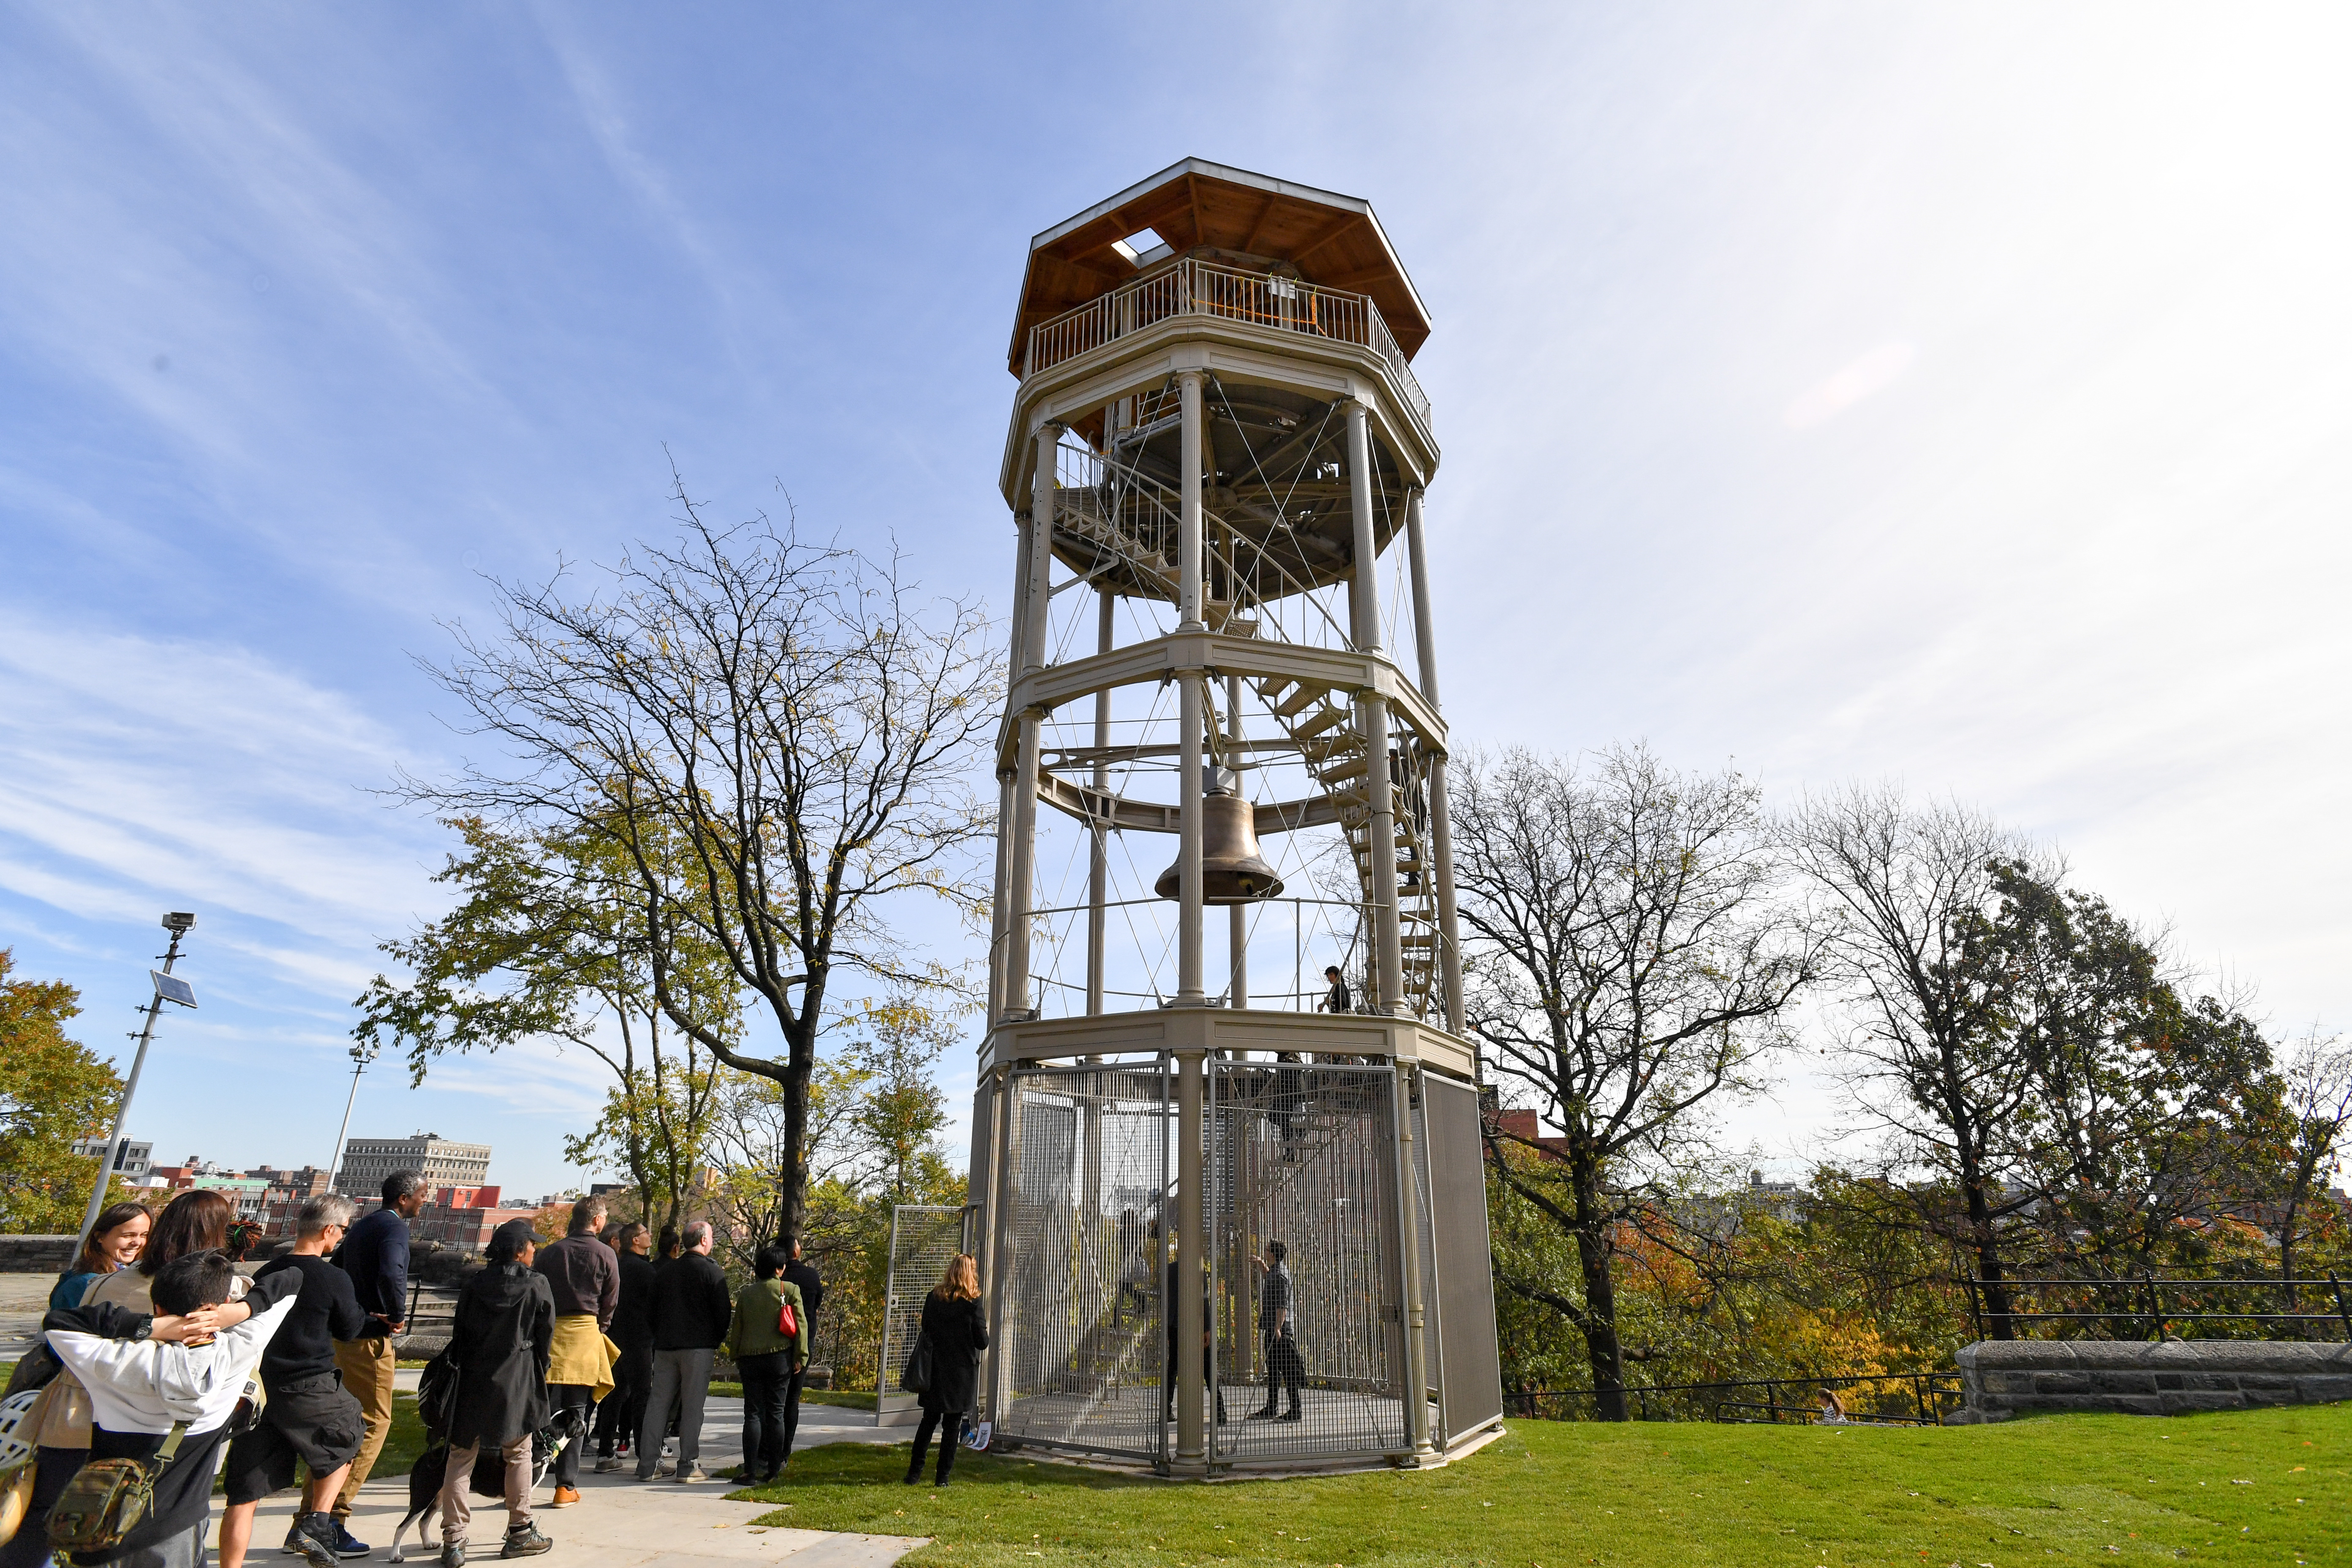 The newly refurbished watchtower in Harlem's Marcus Garvey Park.